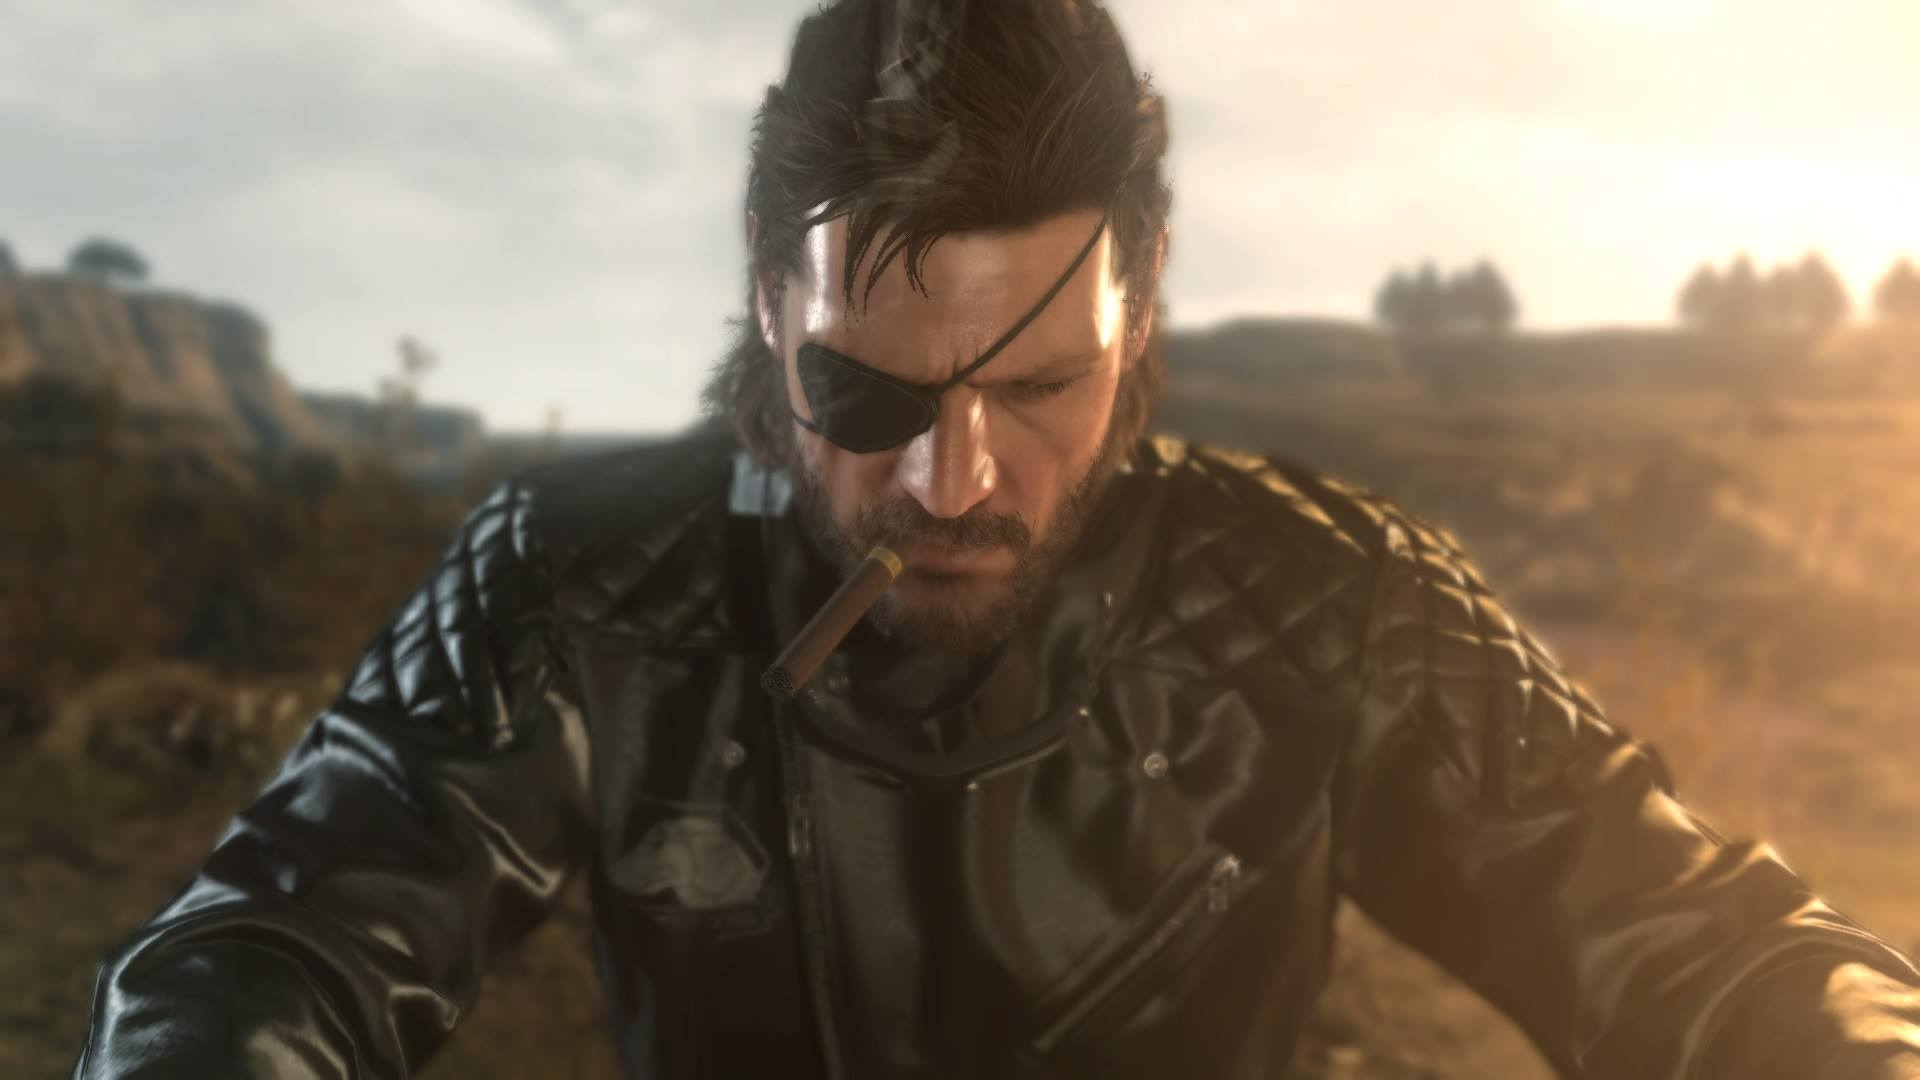 MGSV Phantom Pain